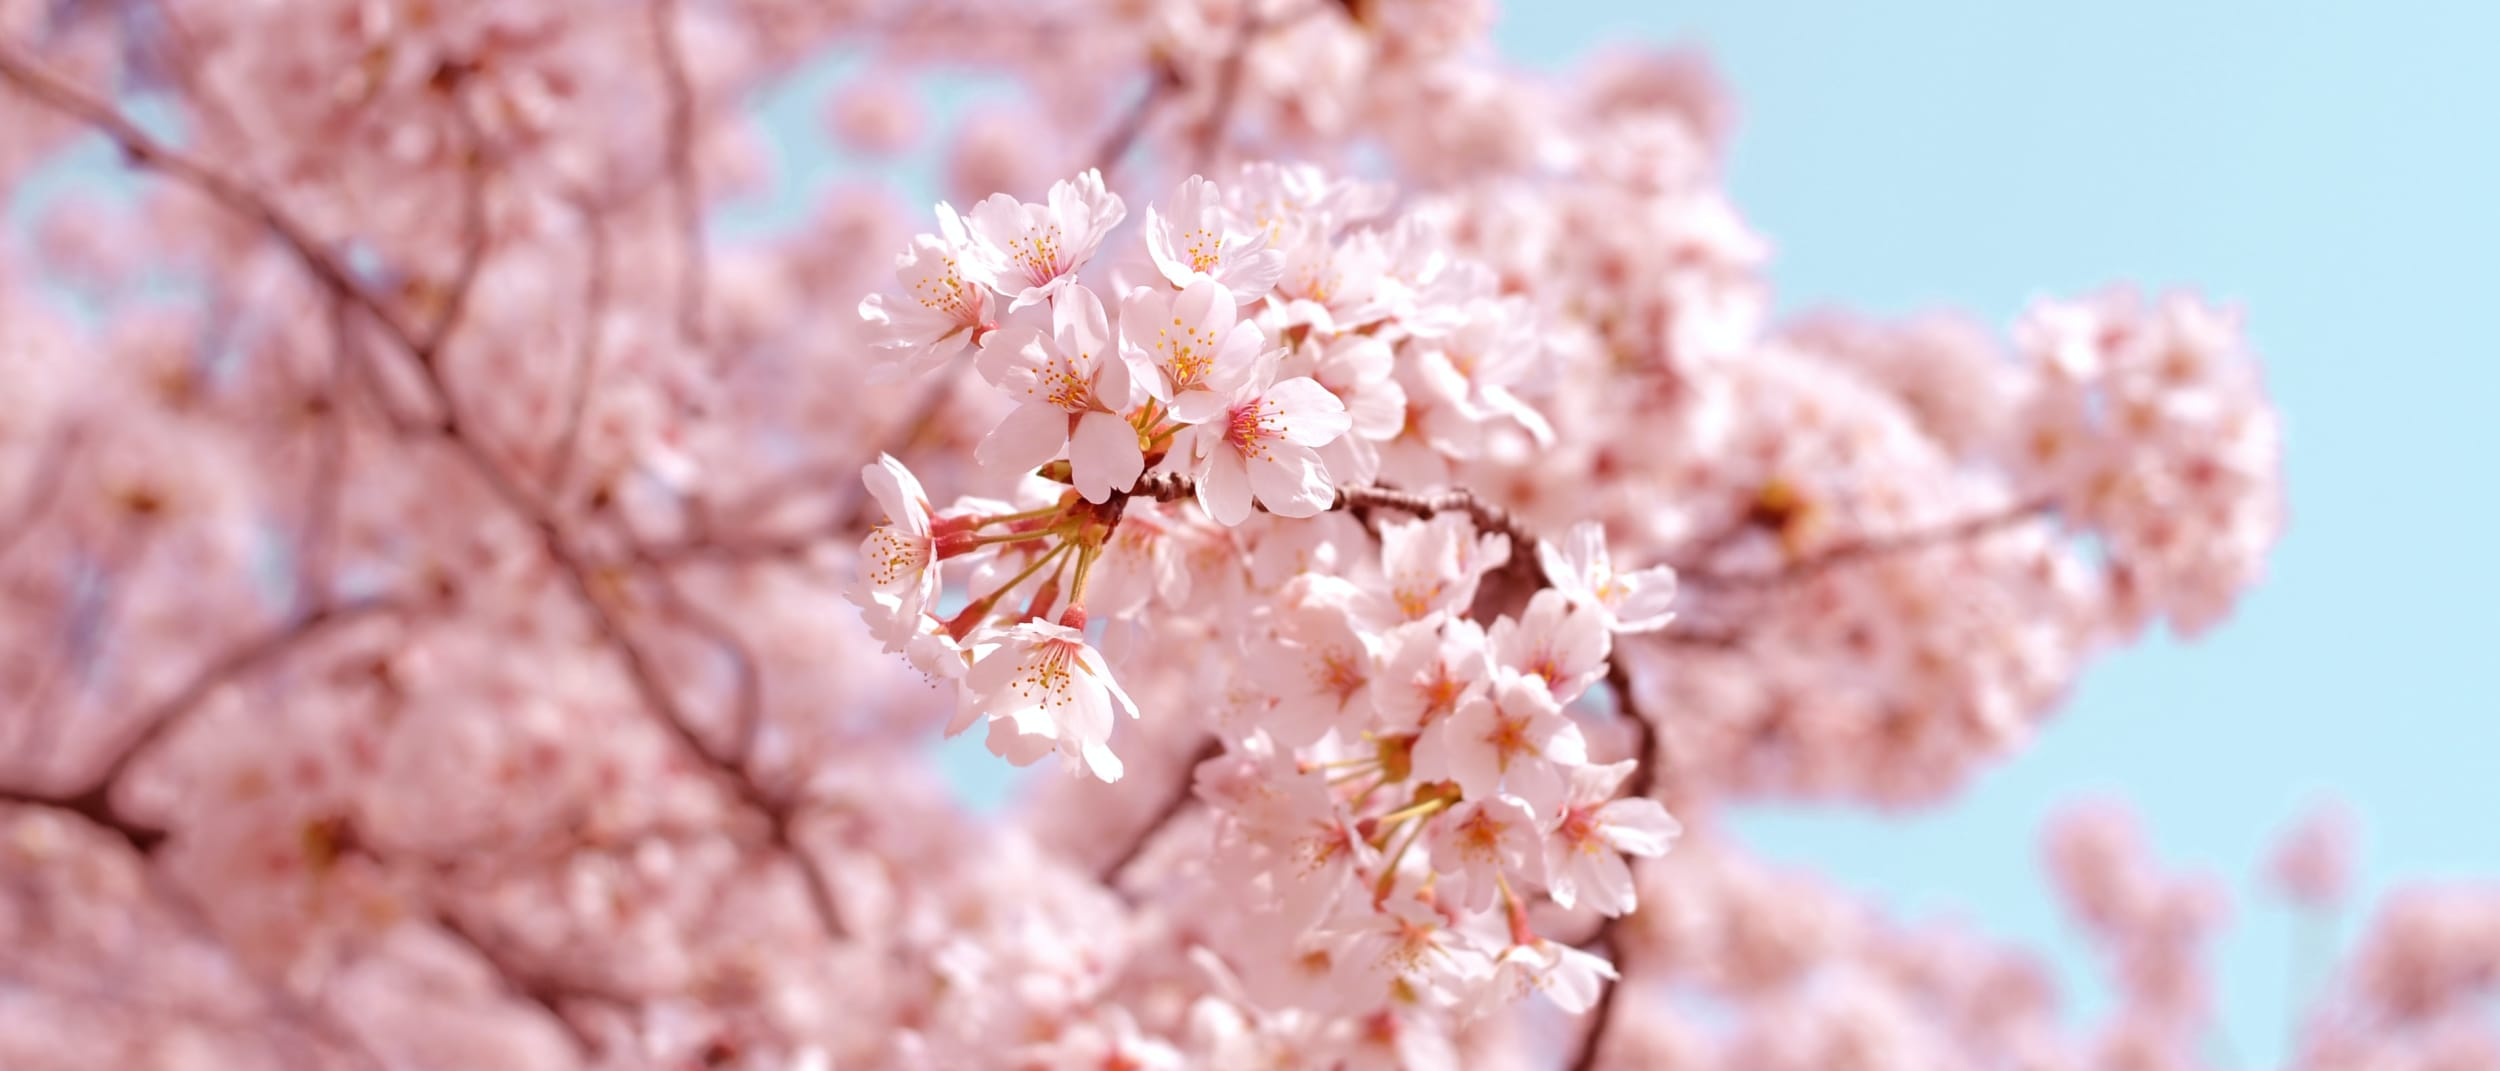 The ultimate Cherry Blossom celebration at Westfield Chatswood